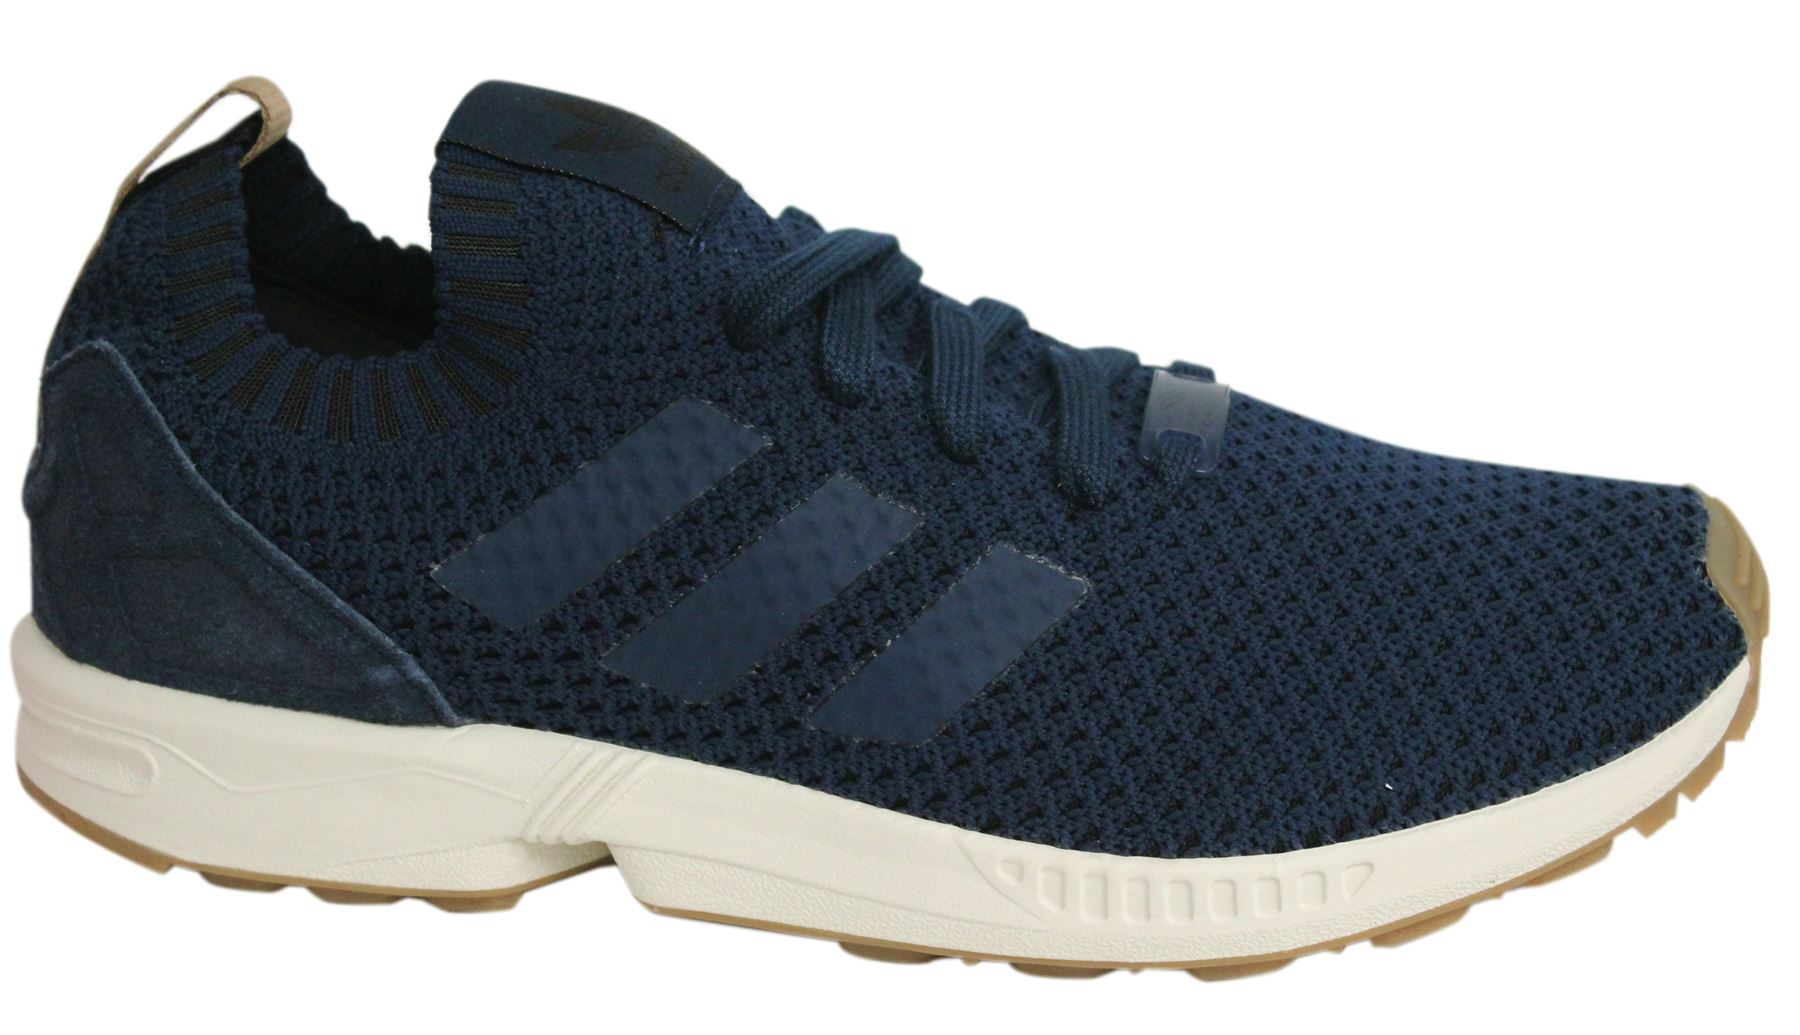 8750e8a21 Adidas ZX Flux PK Lace Up Navy Blue Knitted Textile Mens Trainers BA7372 U14